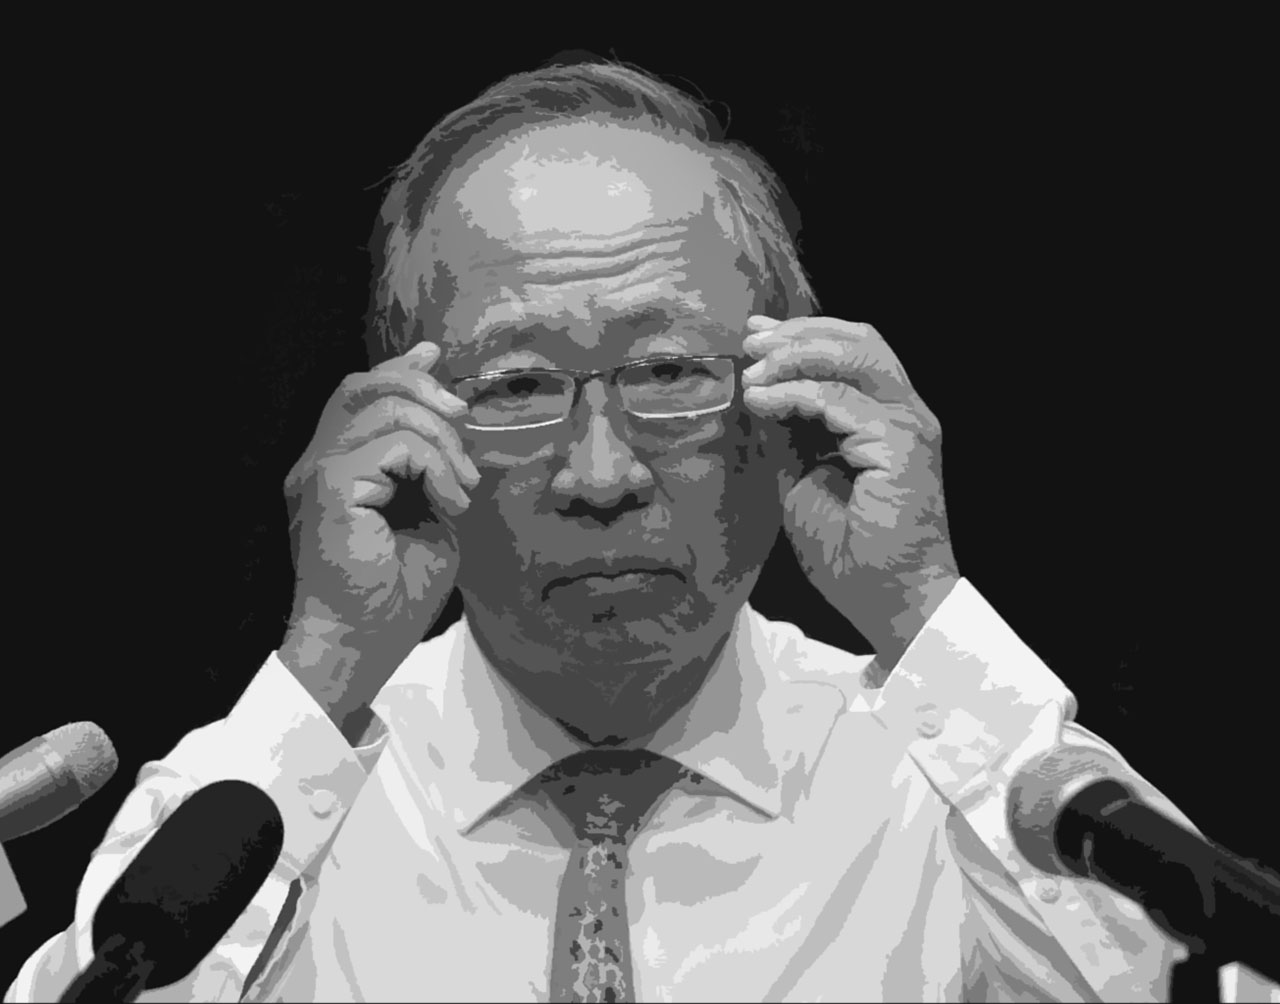 The Ghost of Tan Cheng Bock